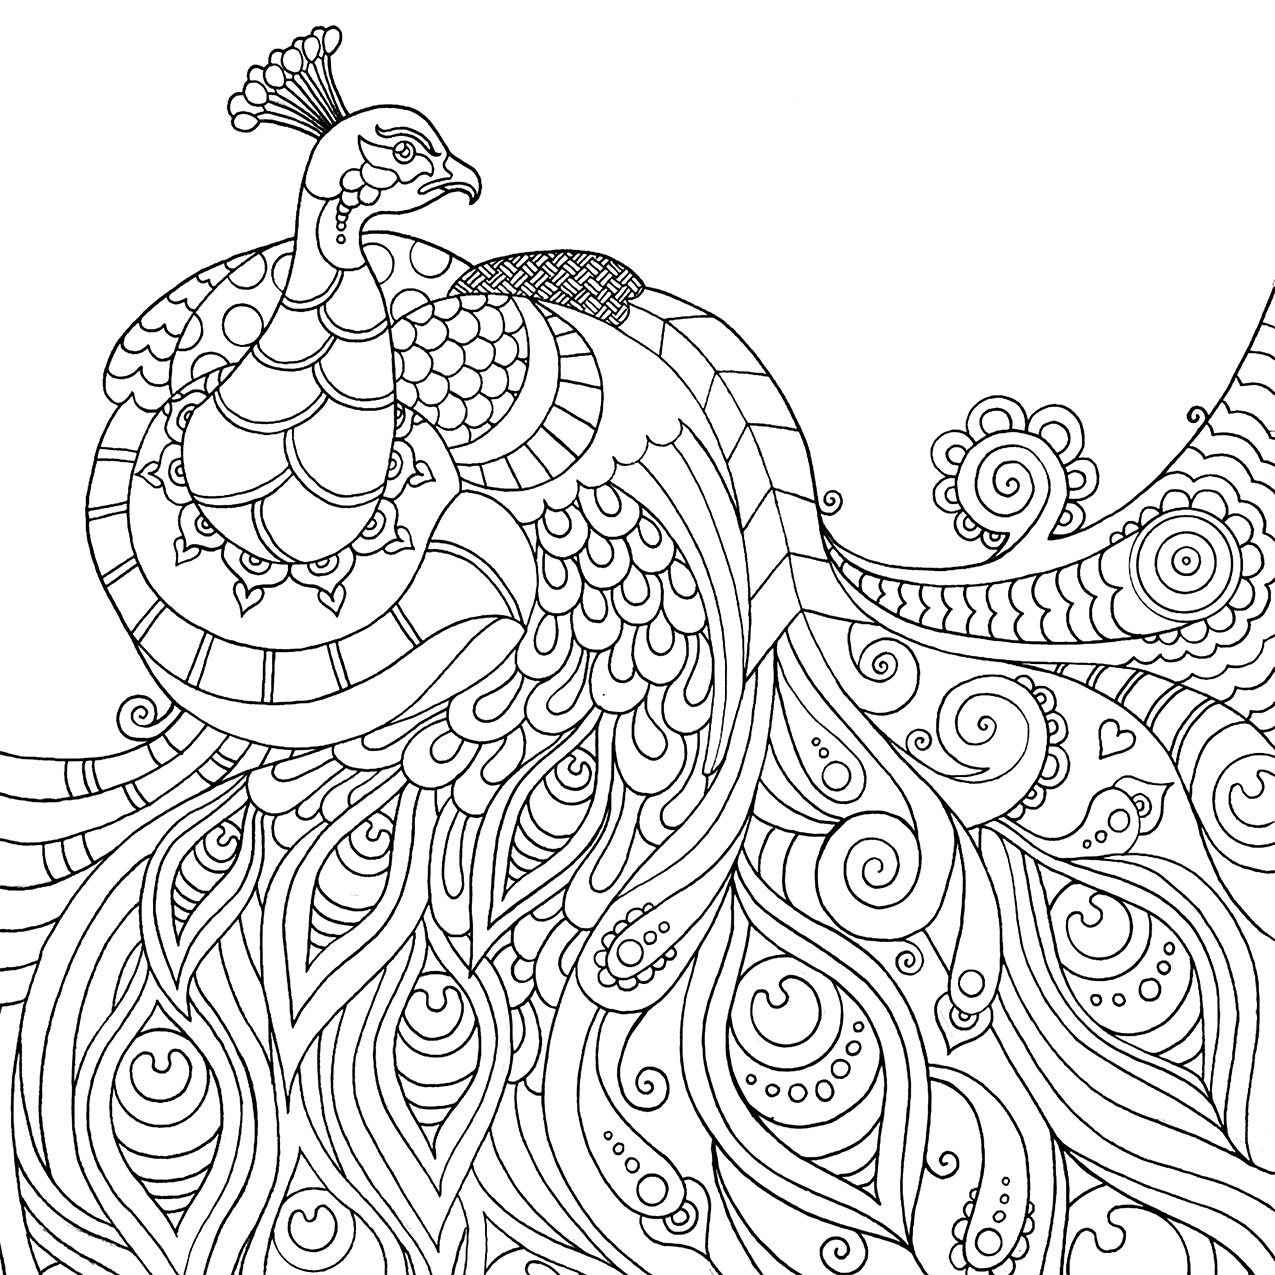 Christmas Colouring Pages Mindfulness With Coloring Best For Kids